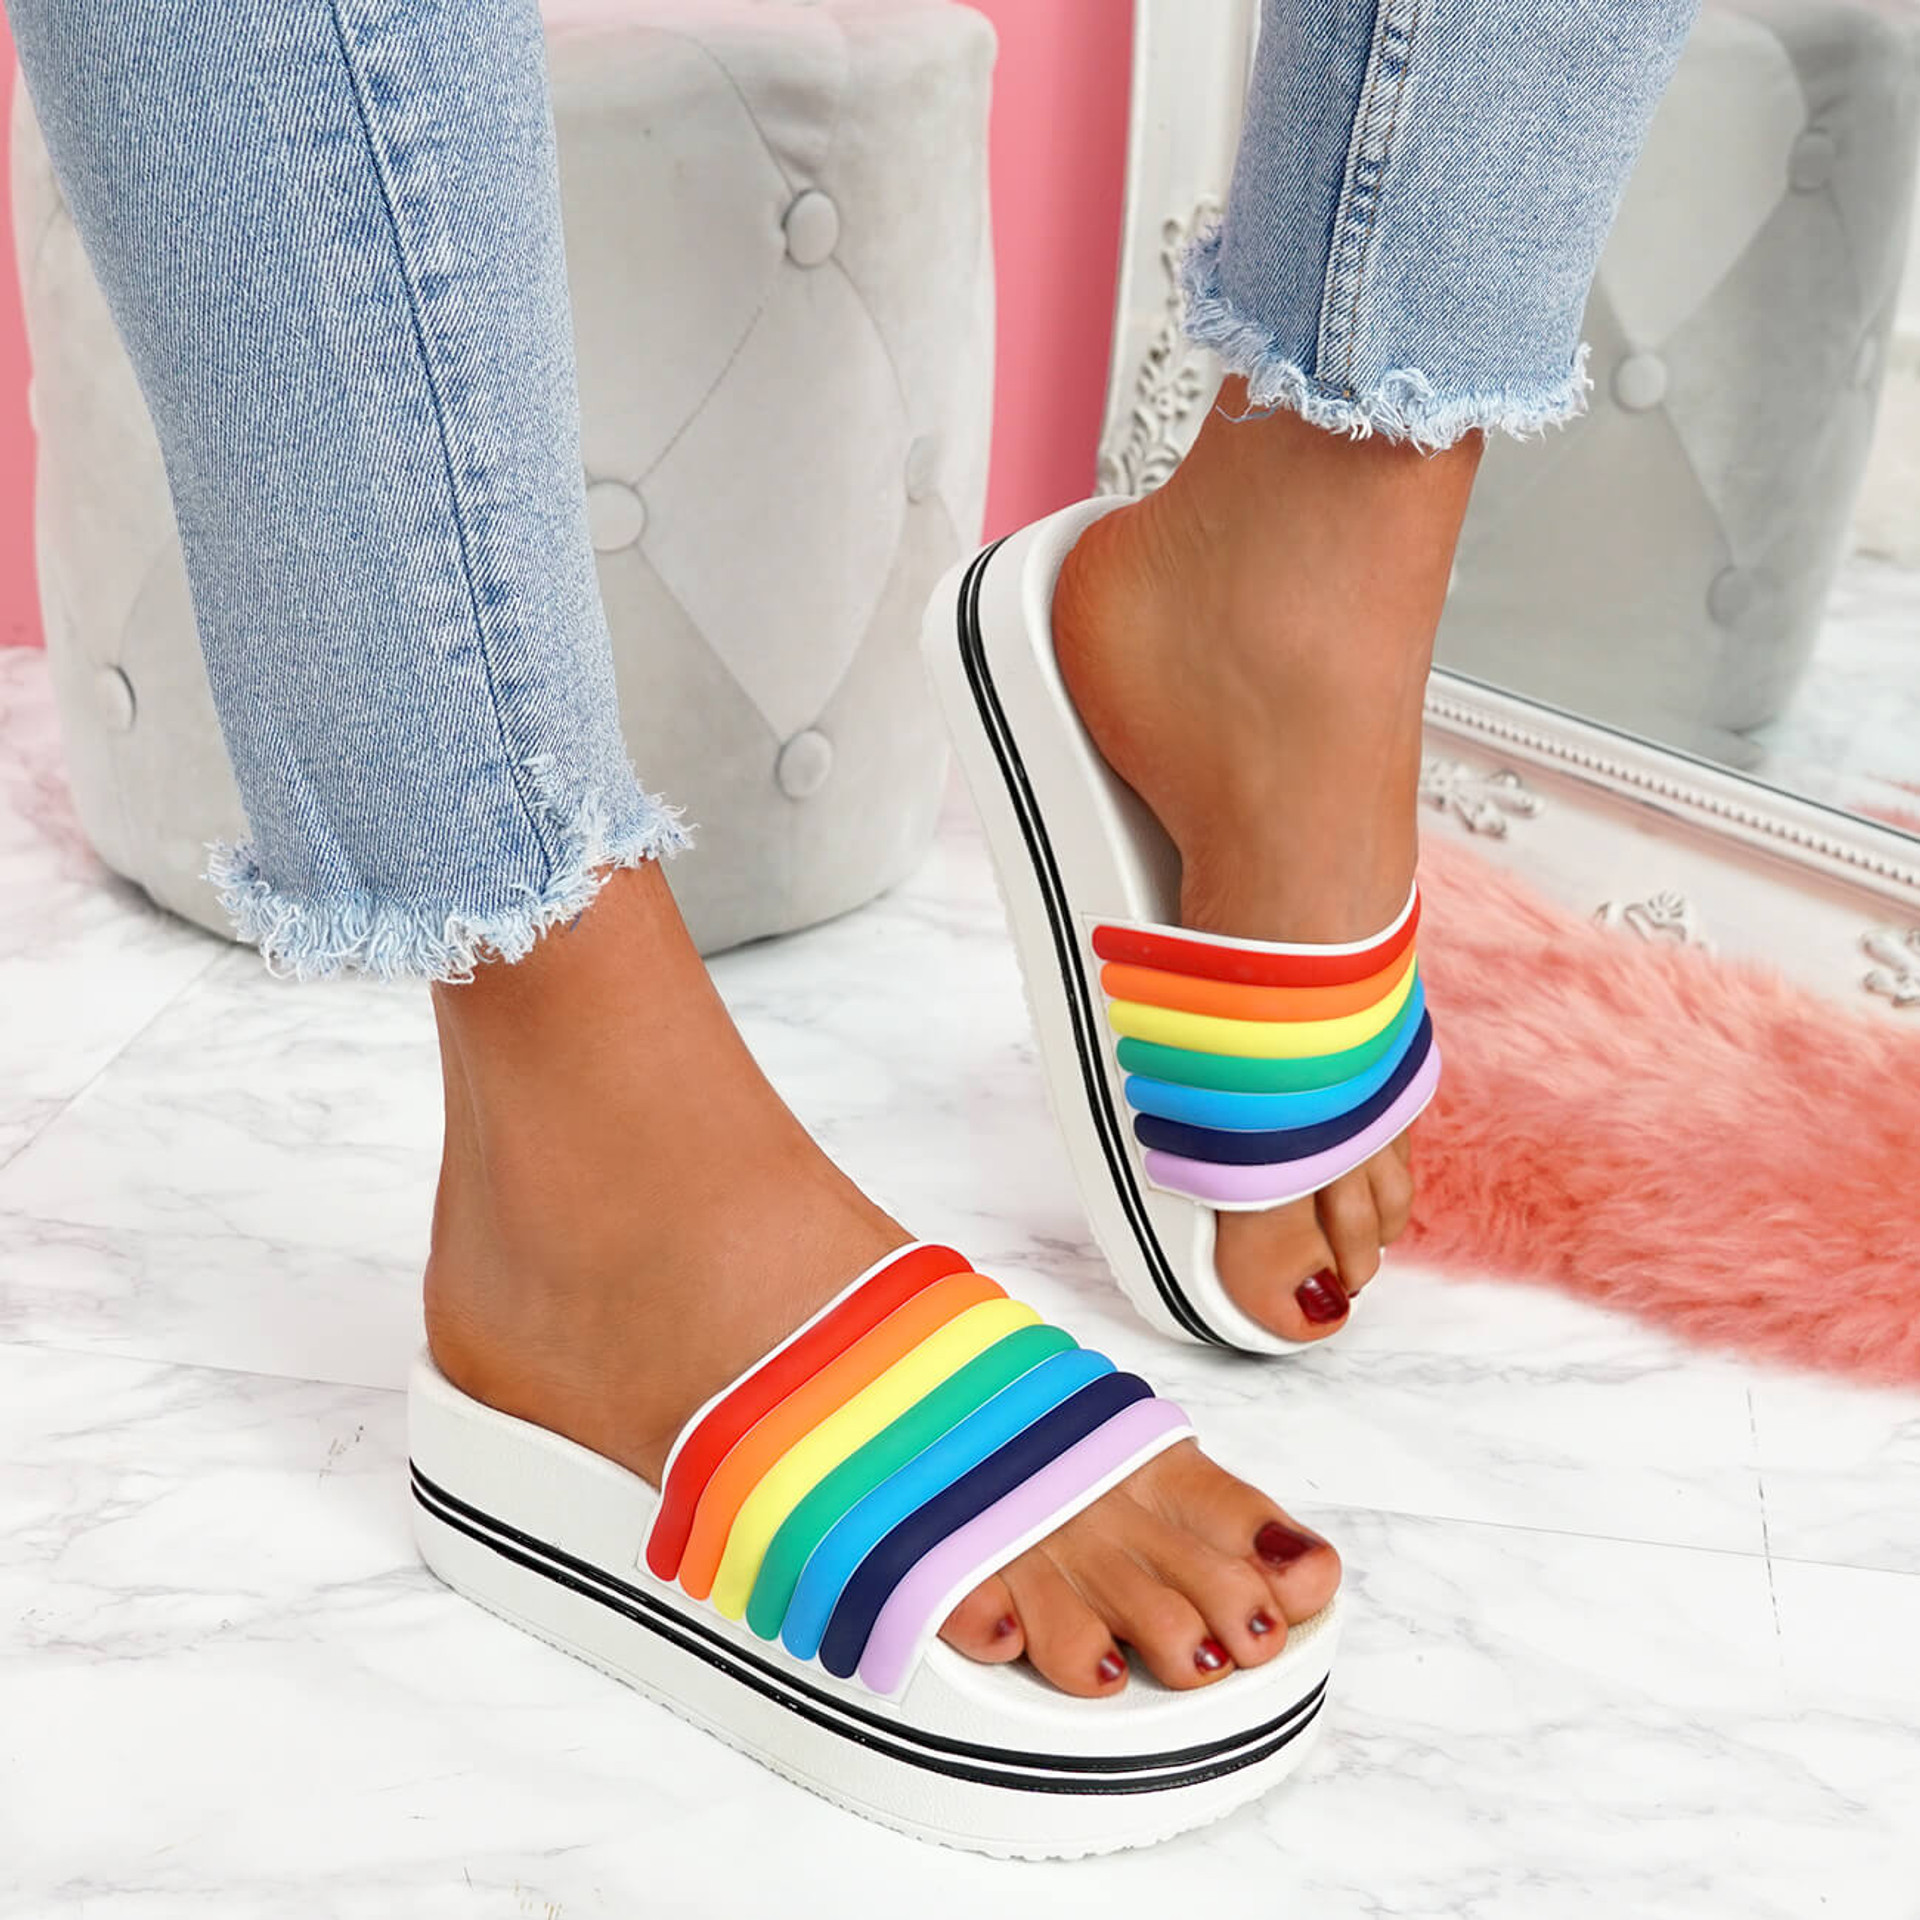 womens ladies slip on rainbow sliders party flat sandals casual shoes size uk 3 4 5 6 7 8